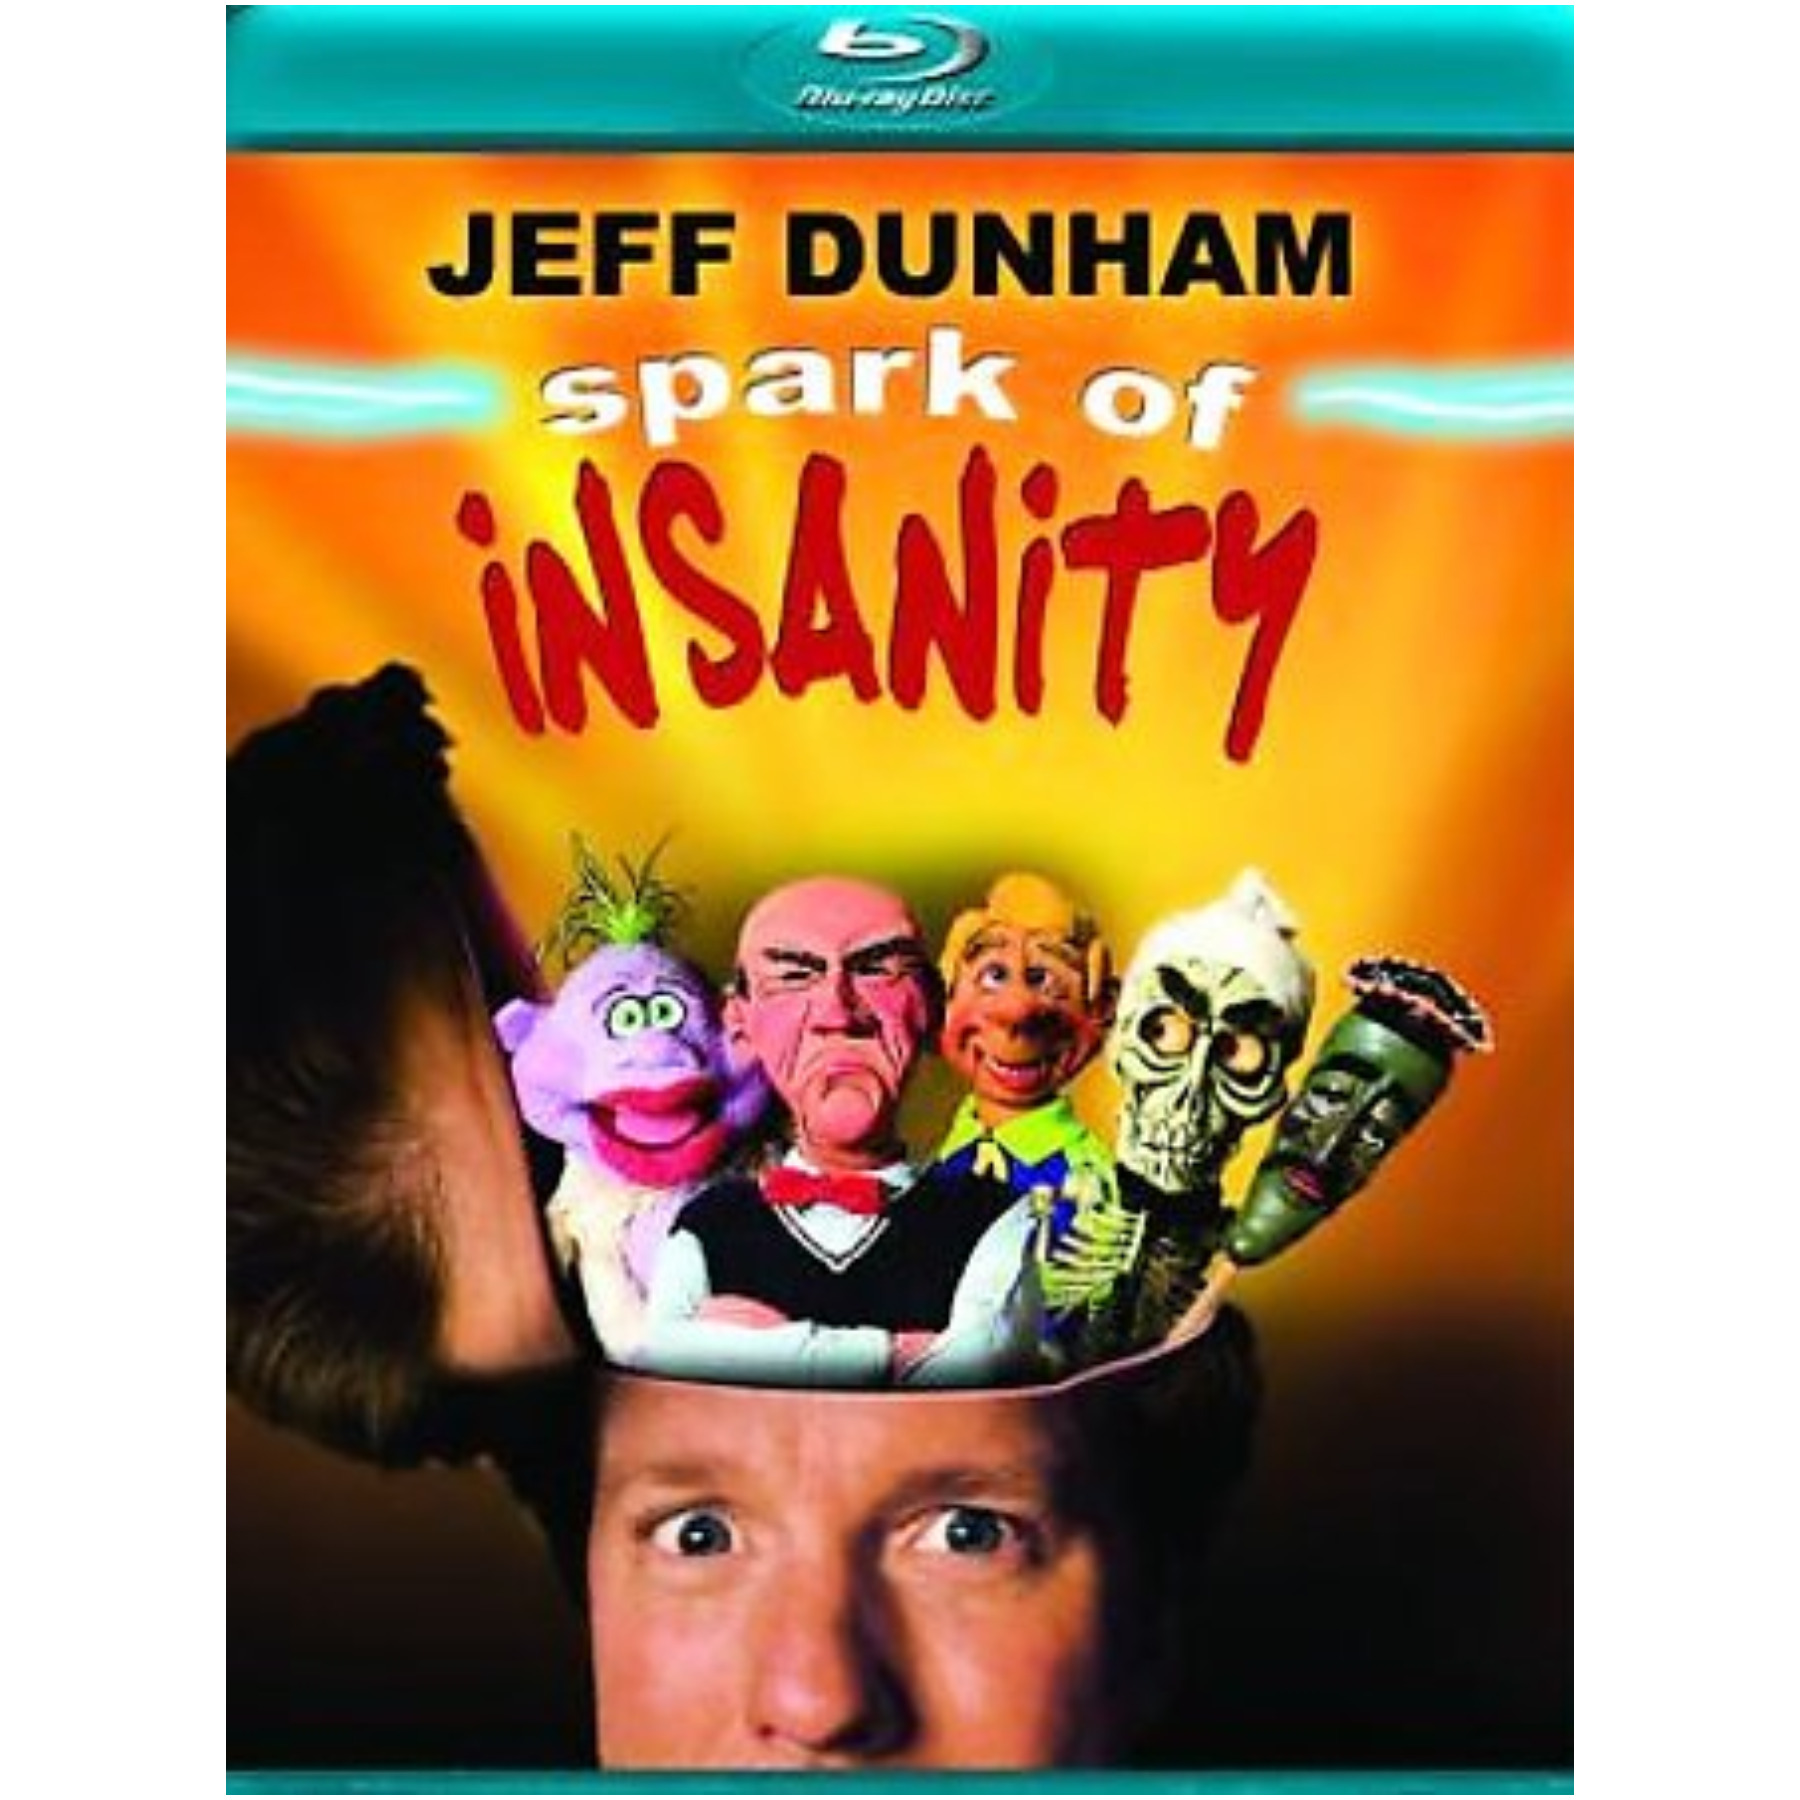 Jeff Dunham-Spark Of Insanity Blu Ray 014381511956